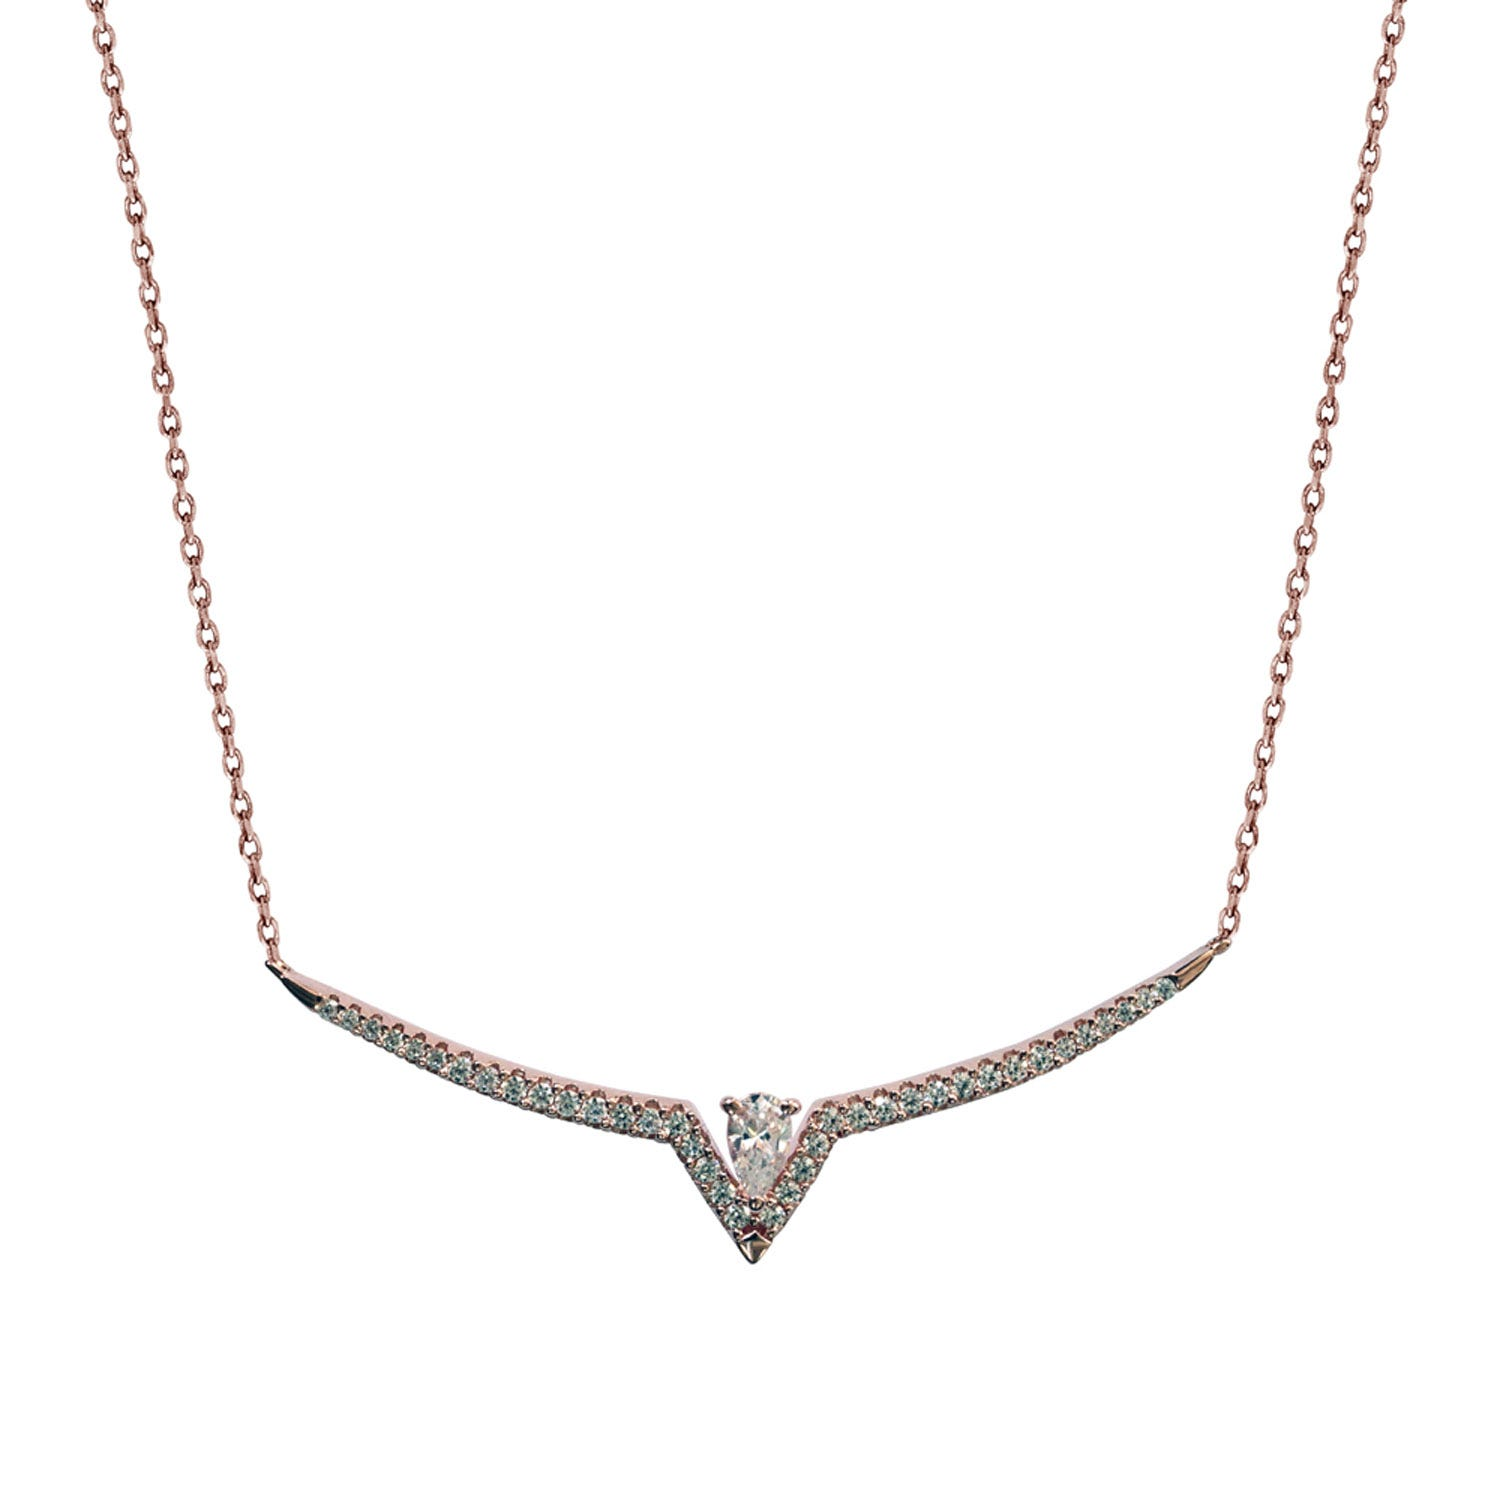 CARAT* London Victoria Collection Rose Gold Plated Sterling Silver Necklace